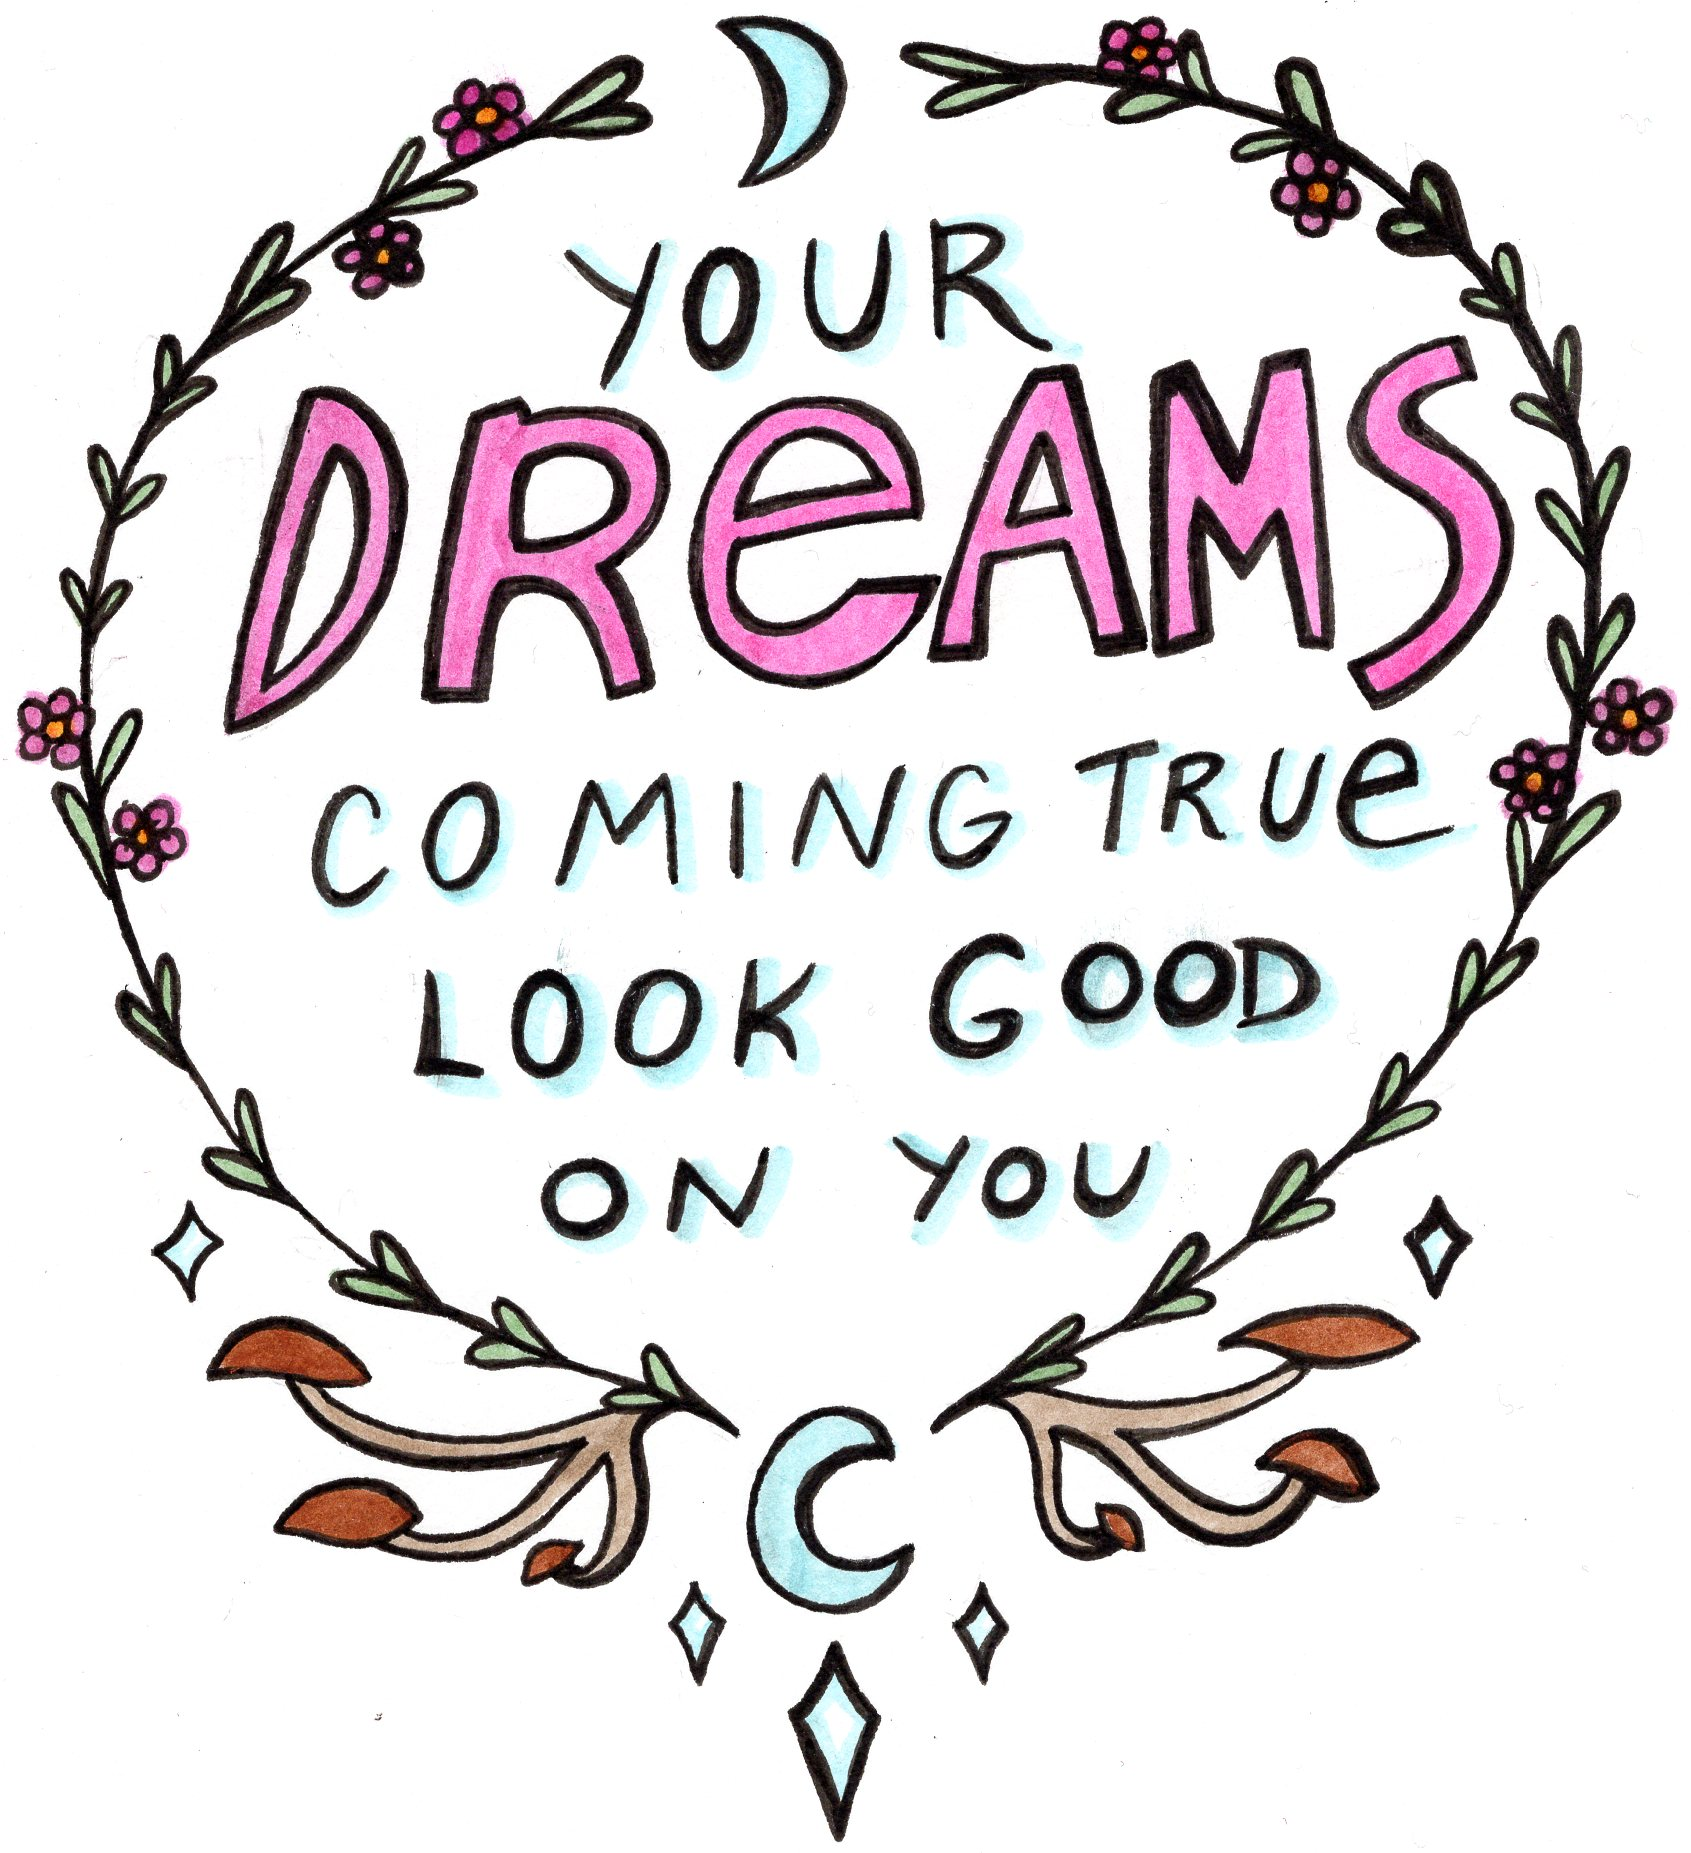 your dreams coming true look good on you unicornface self love doodle